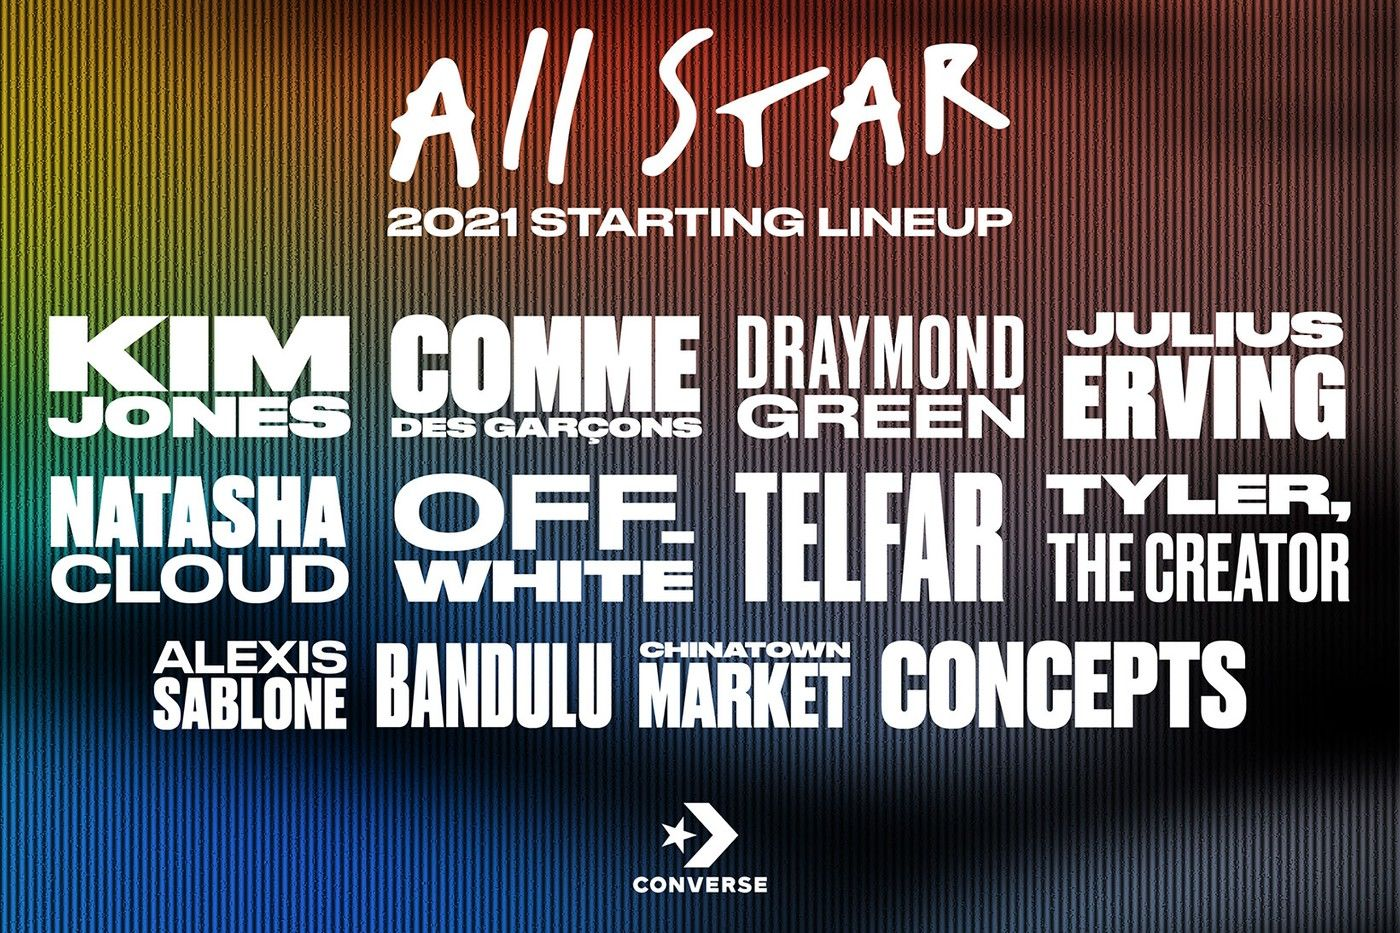 Converse SS21 collaboration lineup